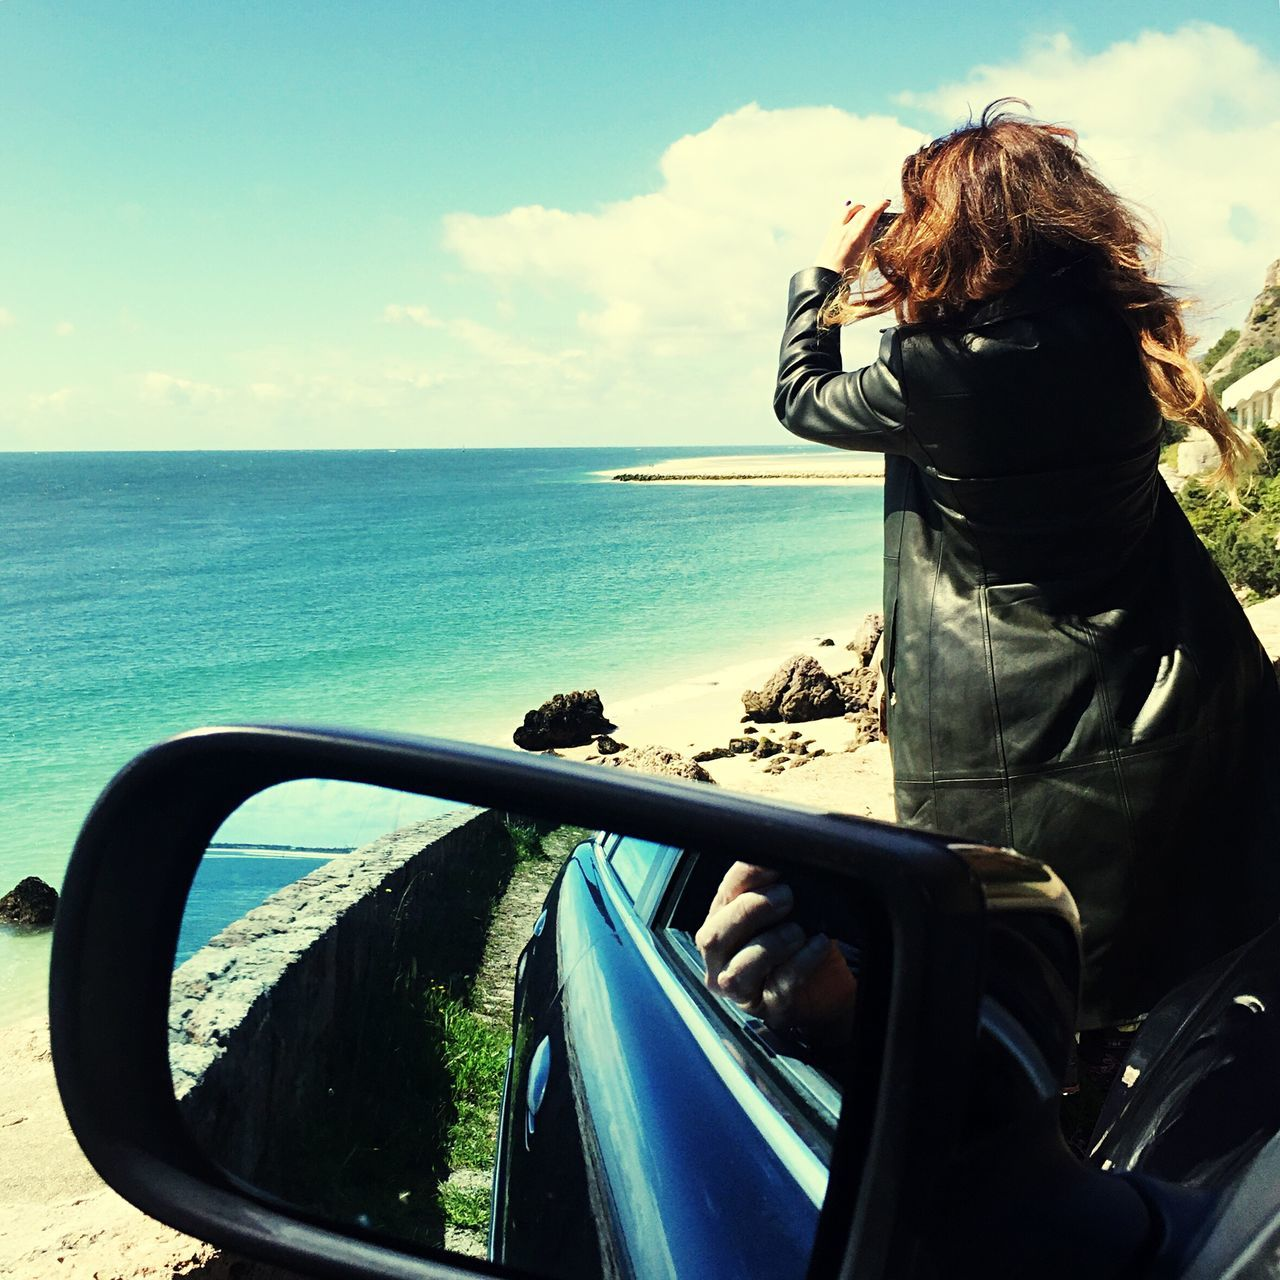 Rear View Of Woman On Car Photographing Sea